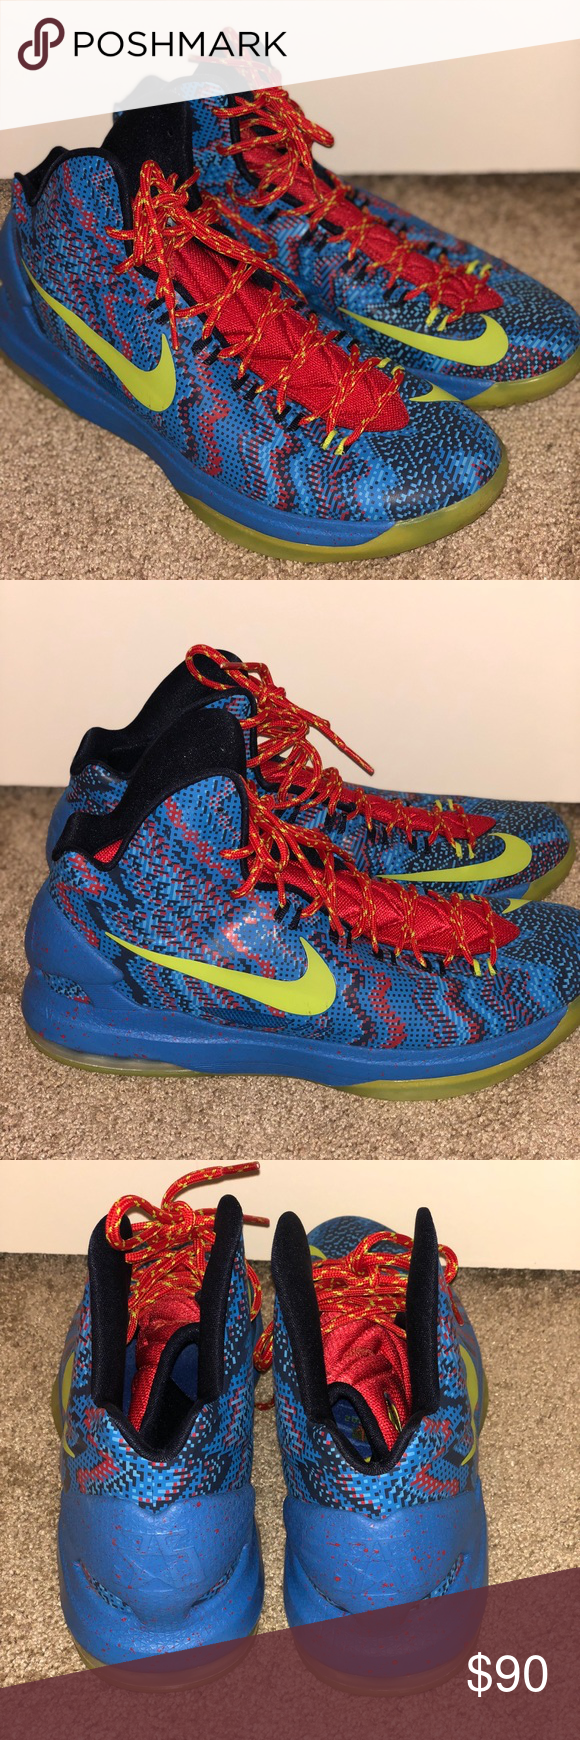 KD 5 Christmas Edition | Shoes sneakers, Size 12 and Nike shoe